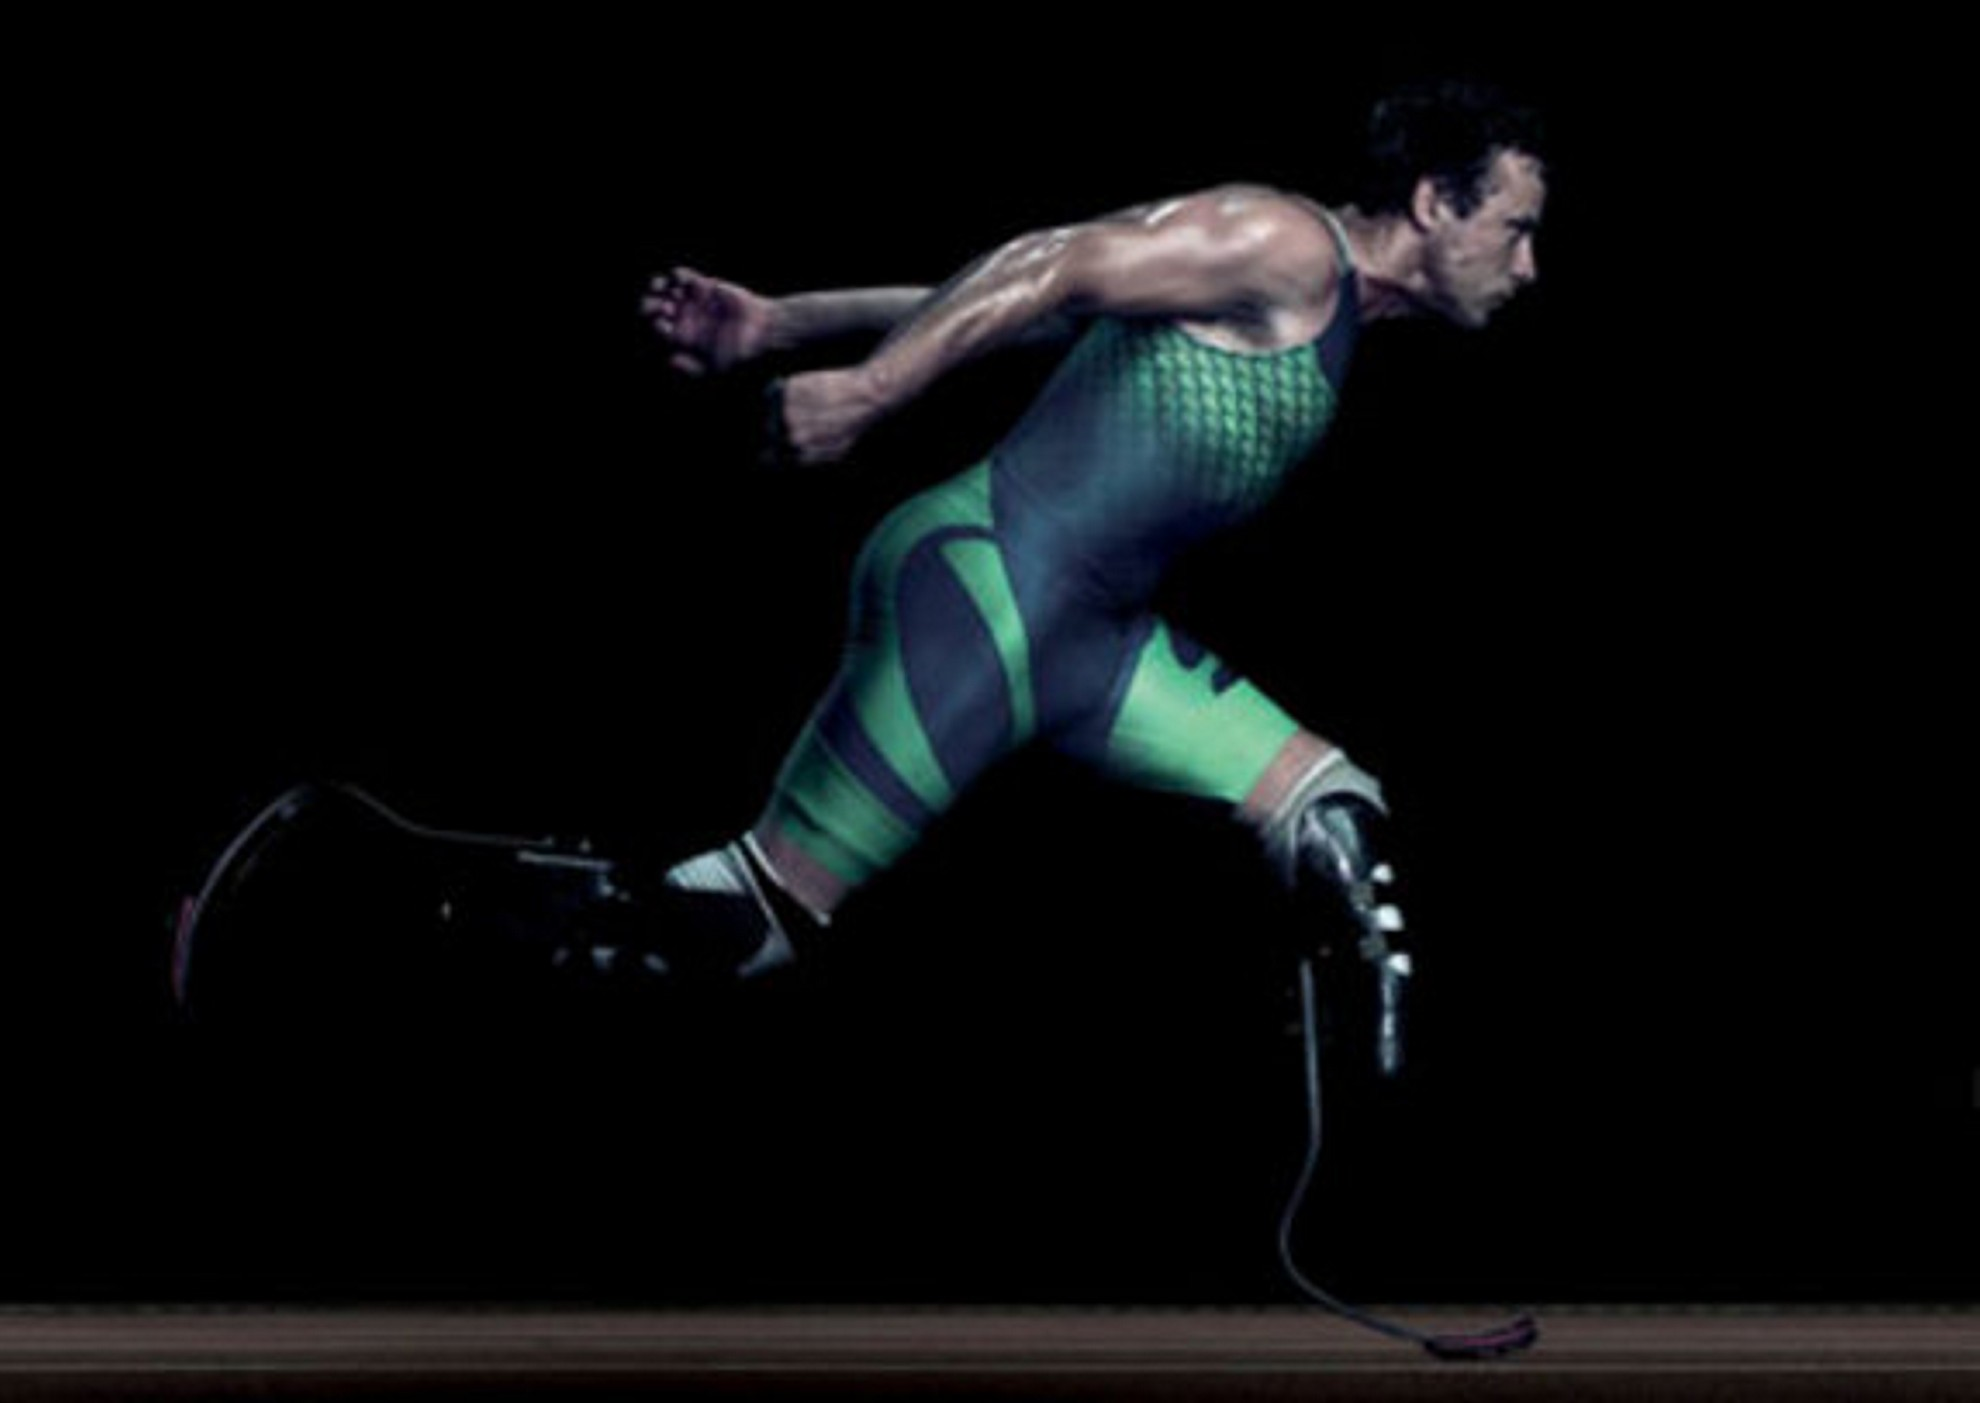 Pictures Of Oscar Pistorius Soaked In Reeva Steenk  S Blood Shown To Murder Trial as well The New Mankini Leaves Absolutely Nothing To The Imagination besides Shark Attack Maneaters And Men in addition These 4 Male Fashion Trends Yay Or Nay likewise Don Draper Meme Tumblr. on oscar pistorius prison today